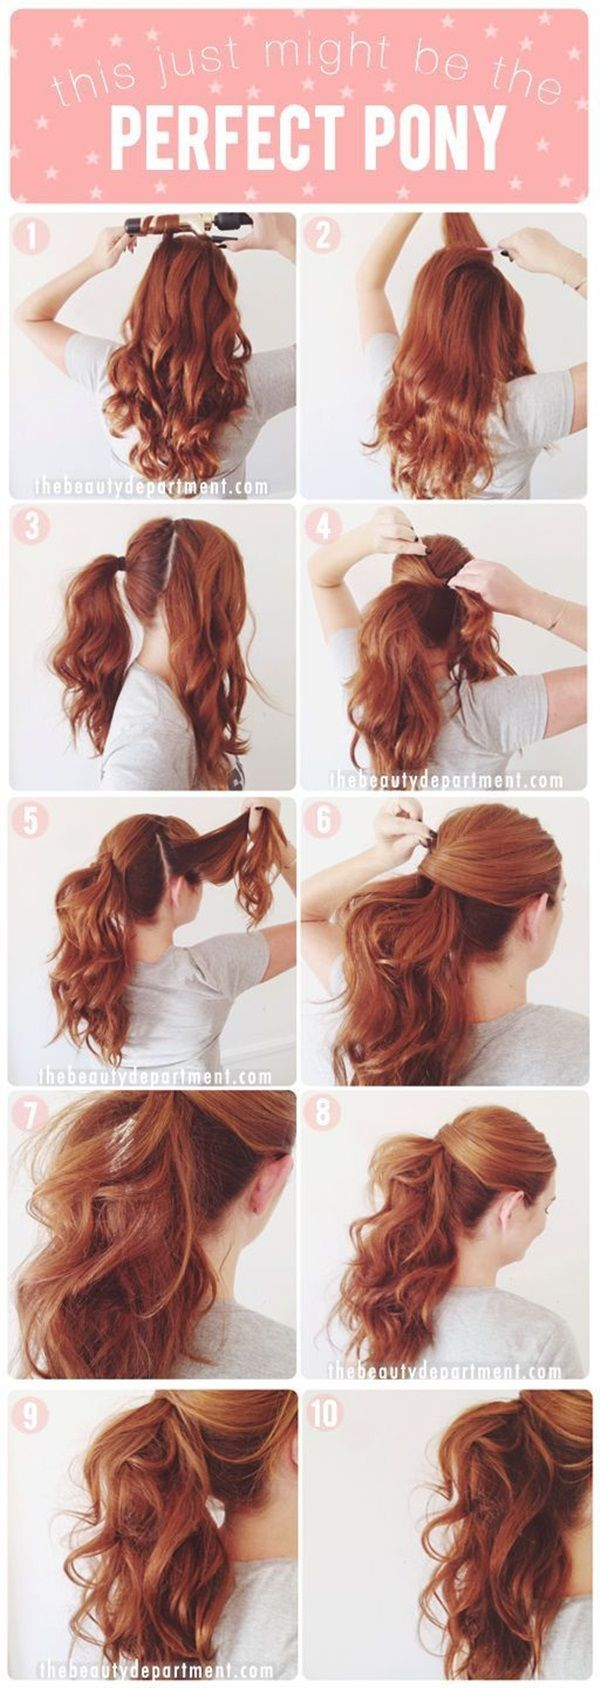 Swell 1000 Ideas About Diy Hairstyles On Pinterest Easy Diy Short Hairstyles For Black Women Fulllsitofus